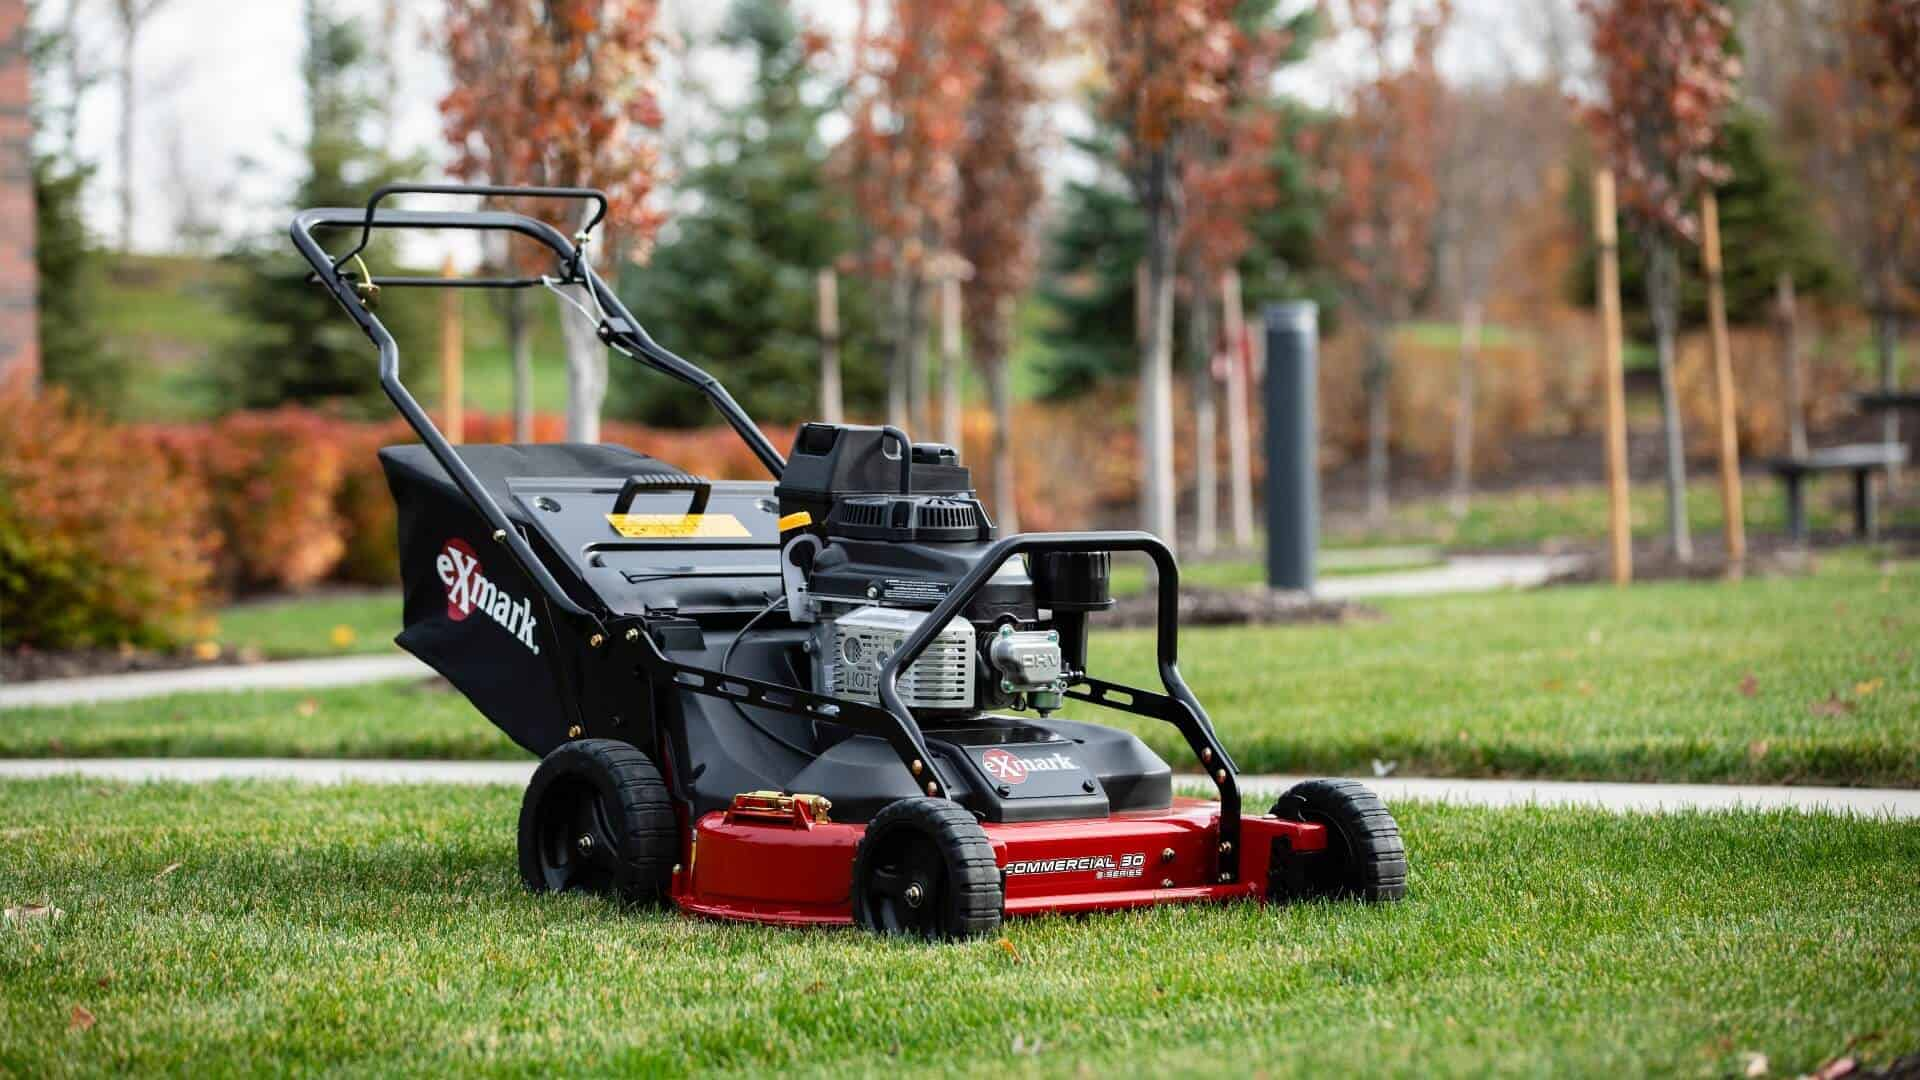 Exmark mower ready for Fall maintenance